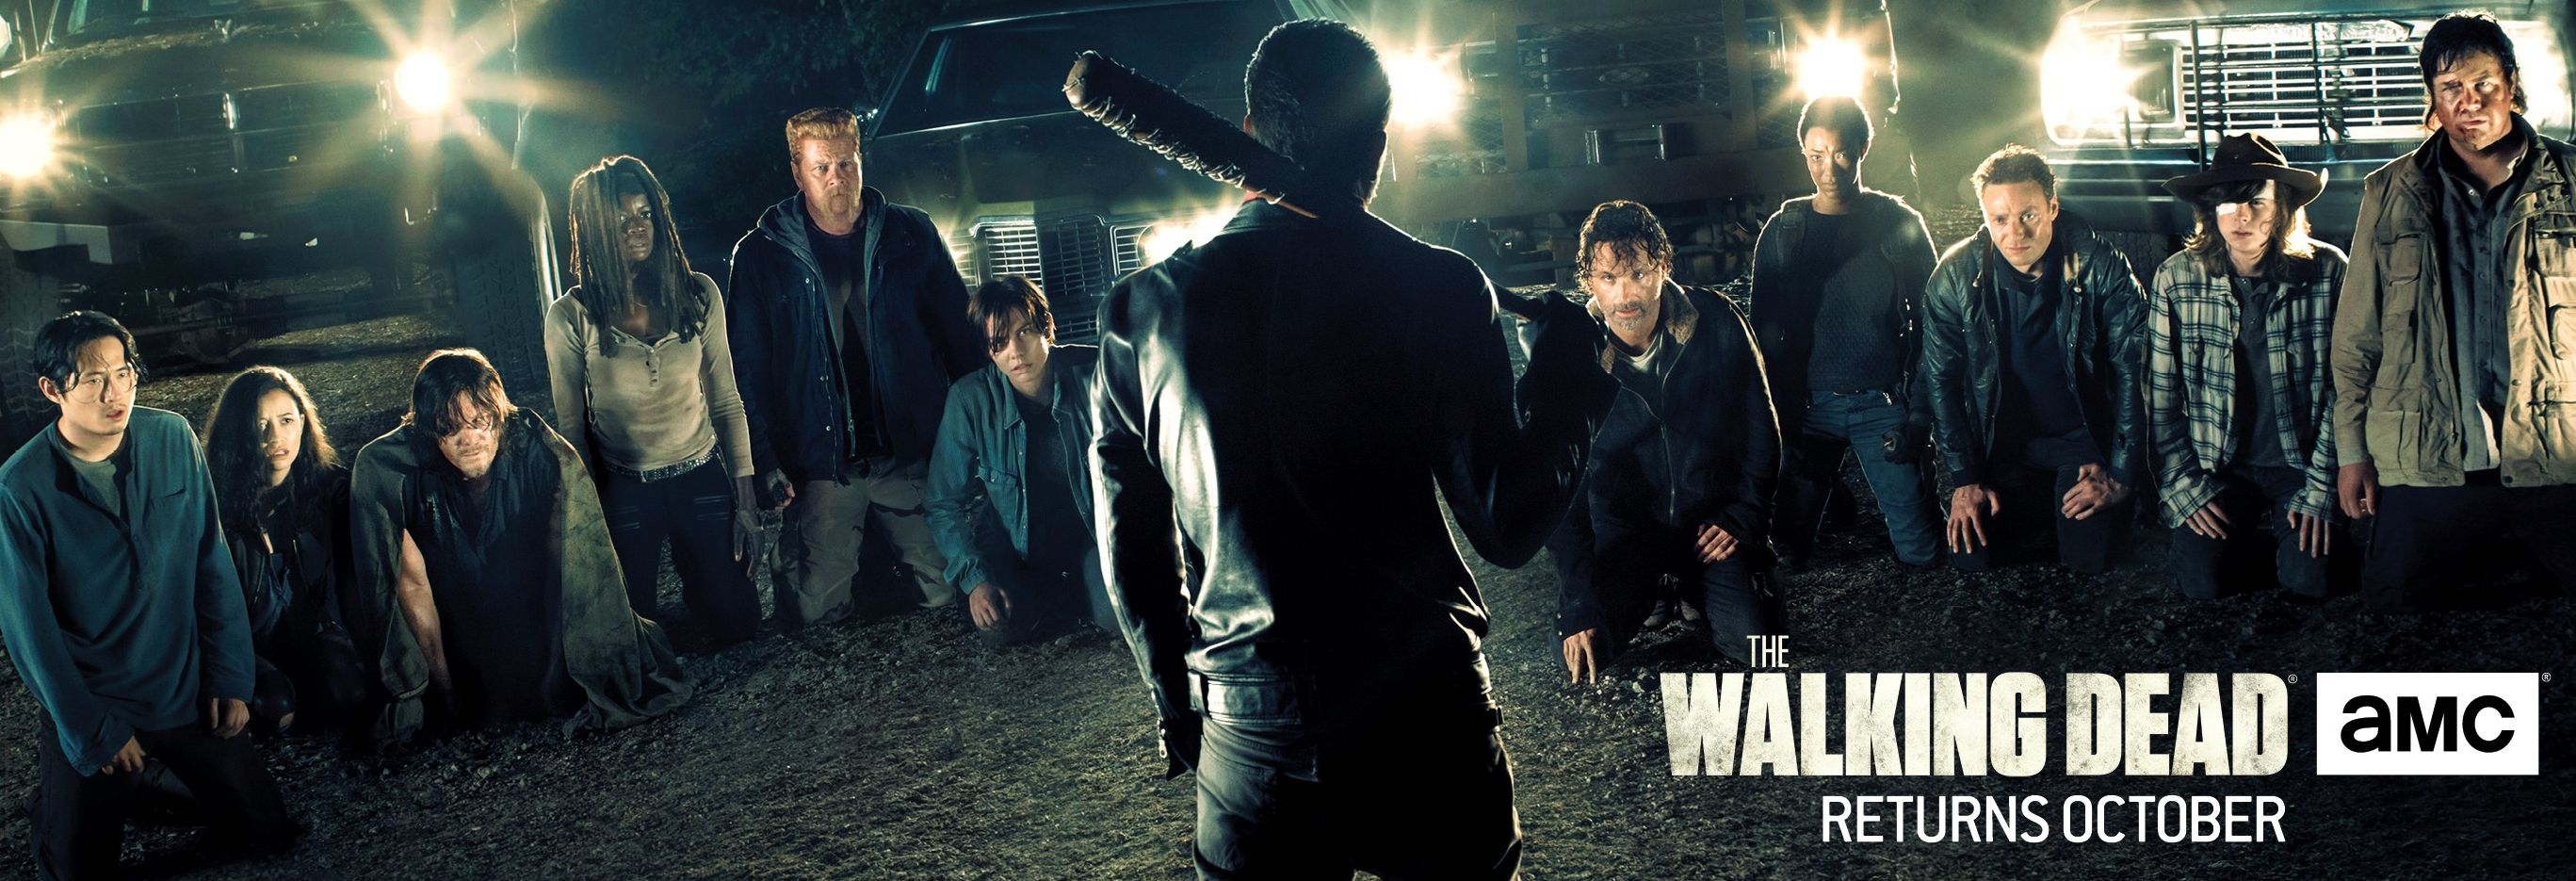 First poster art revealed for 'The Walking Dead' Season 7 Ah